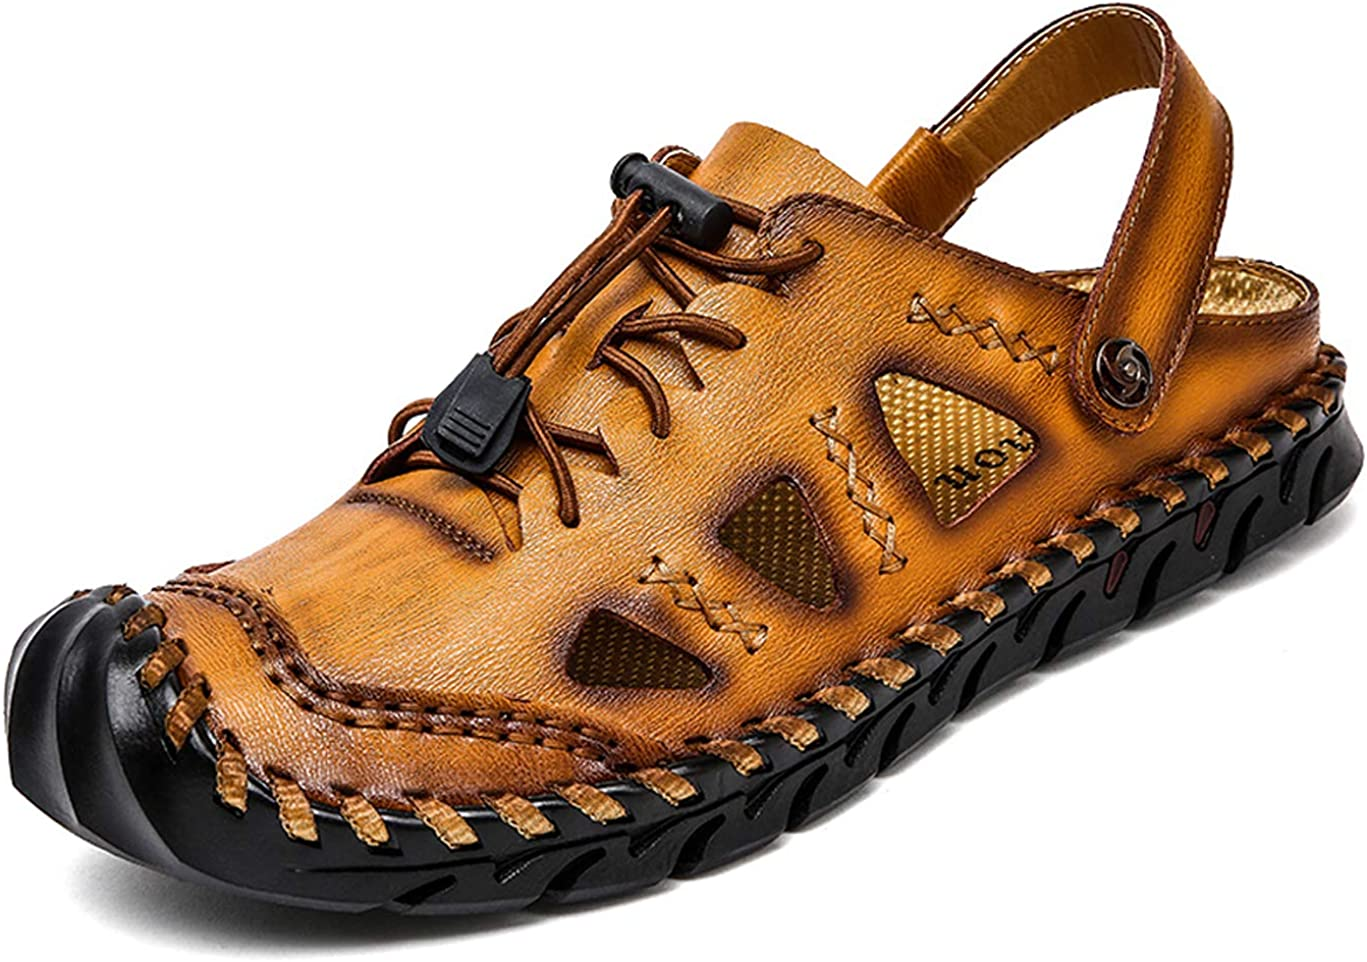 Honeystore Men's Leather Creek Water Hollow 定番から日本未入荷 Plus Beac Size 推奨 Shoes